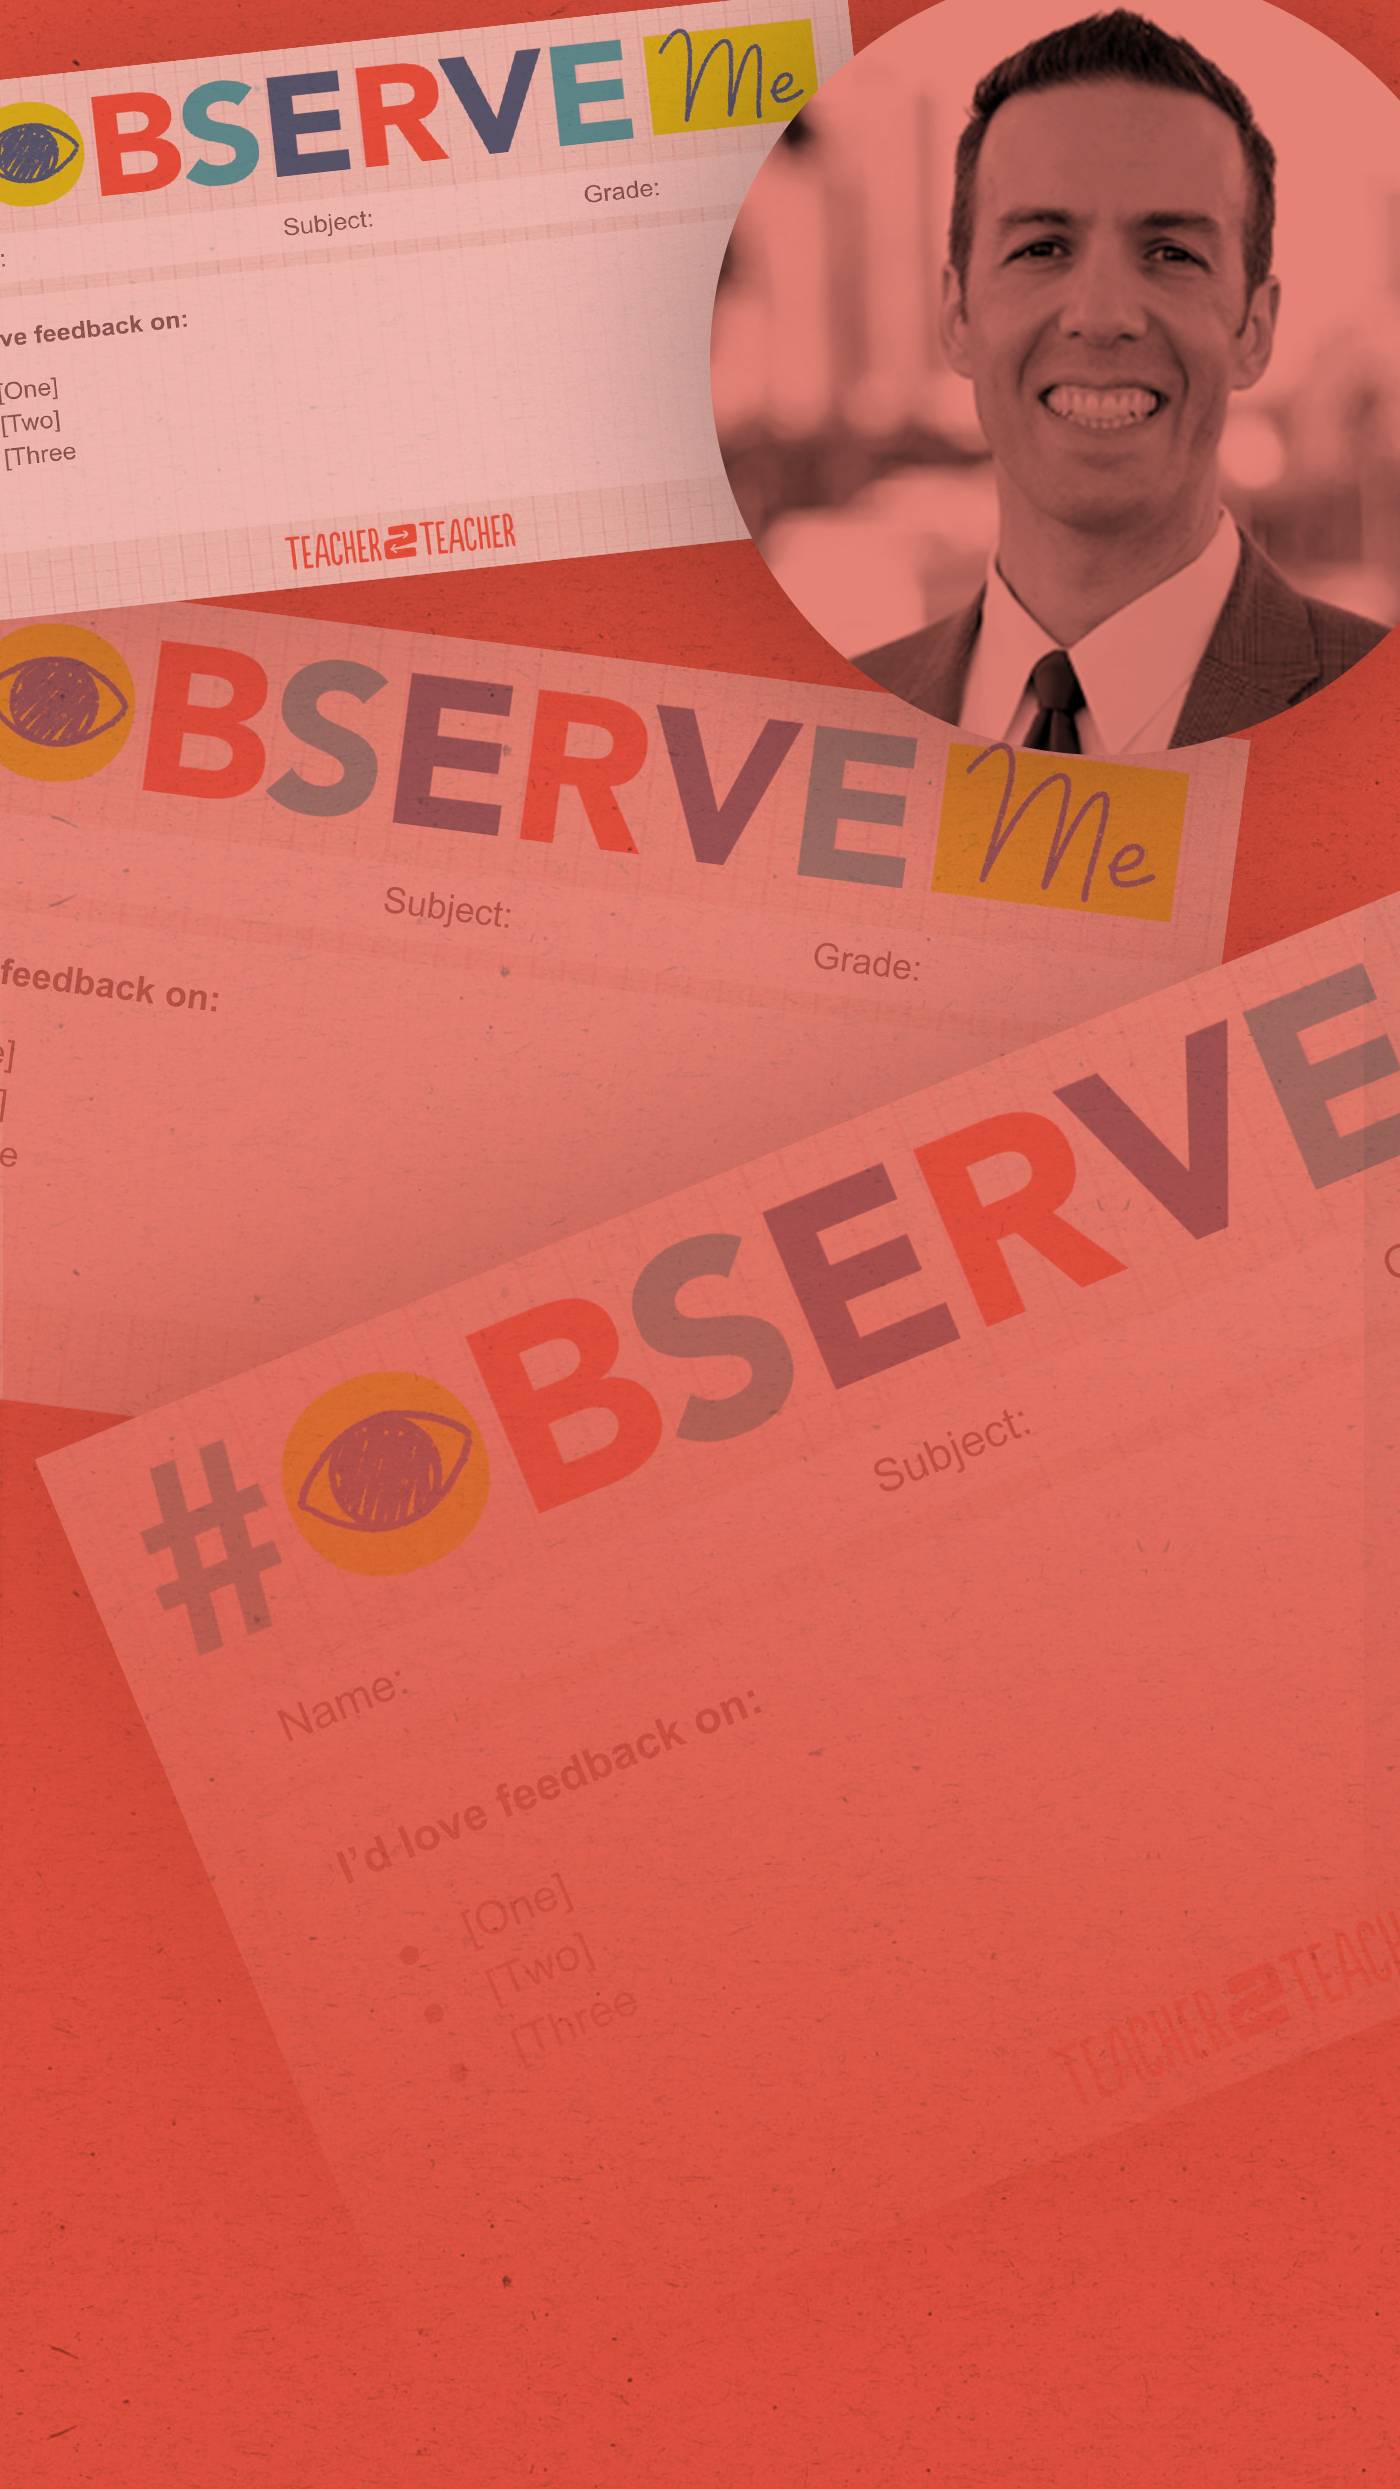 Educator Robert Kaplinksy invites you to try #ObserveMe to get feedback from your fellow teachers – and shares a fun template to get you started.